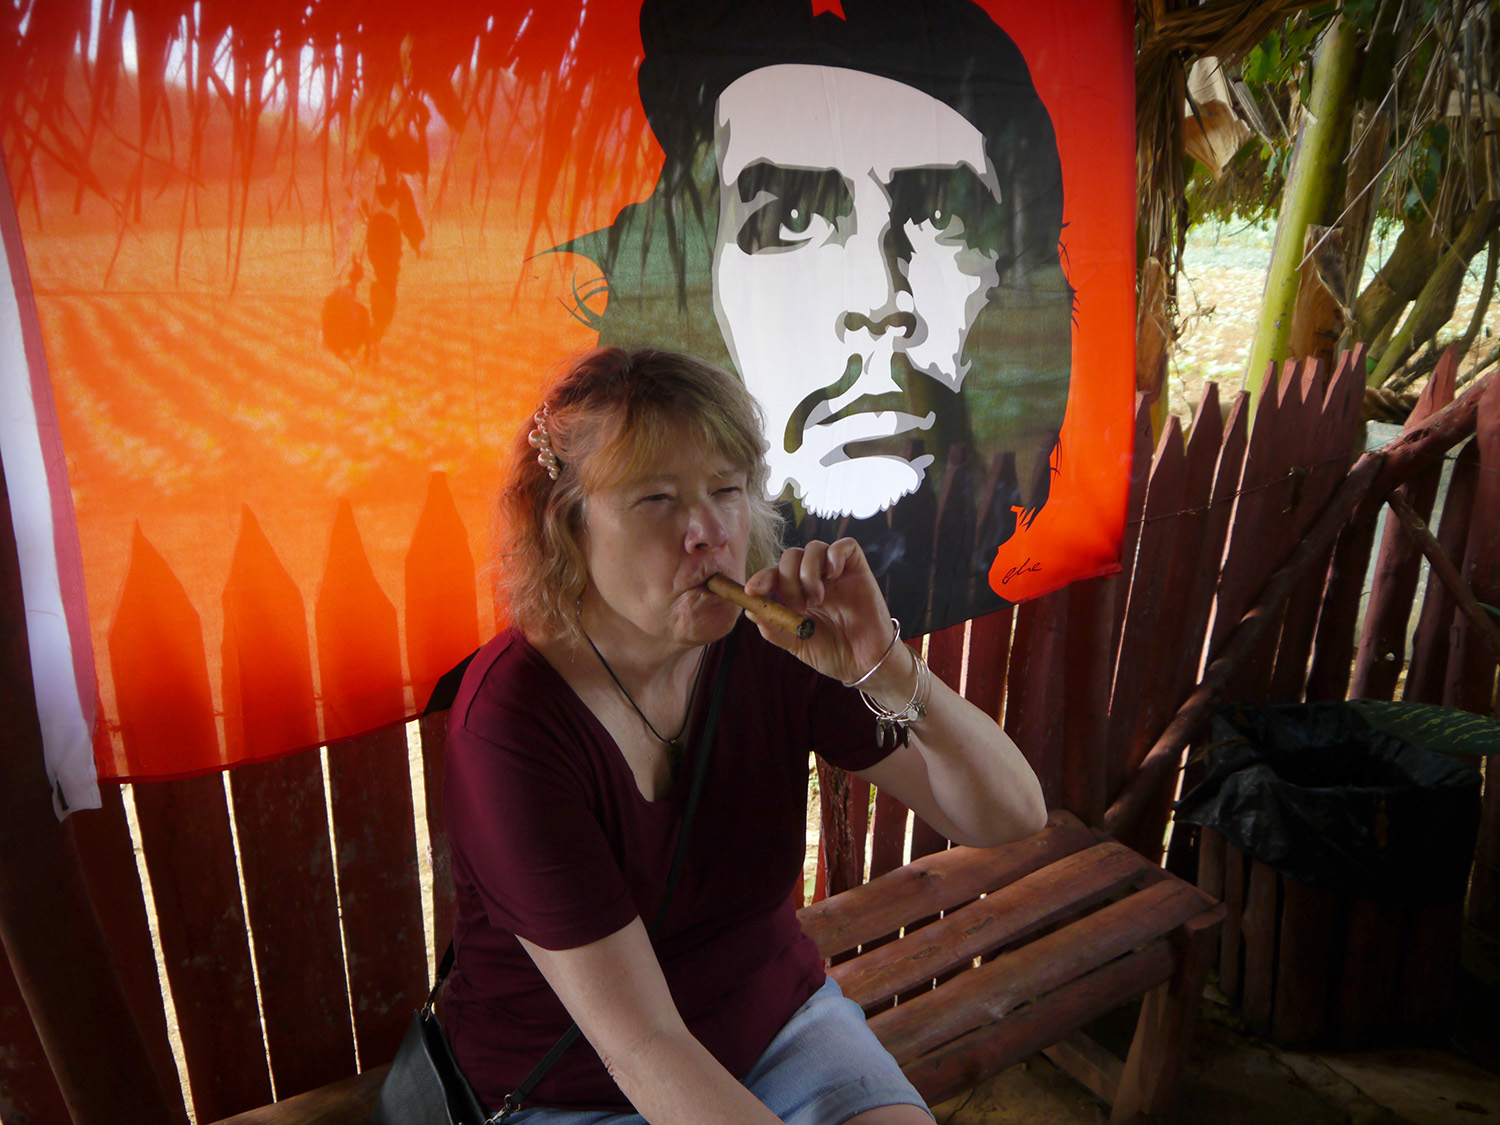 Tricia takes a drag on a cigar in front of a Che Guevara banner.